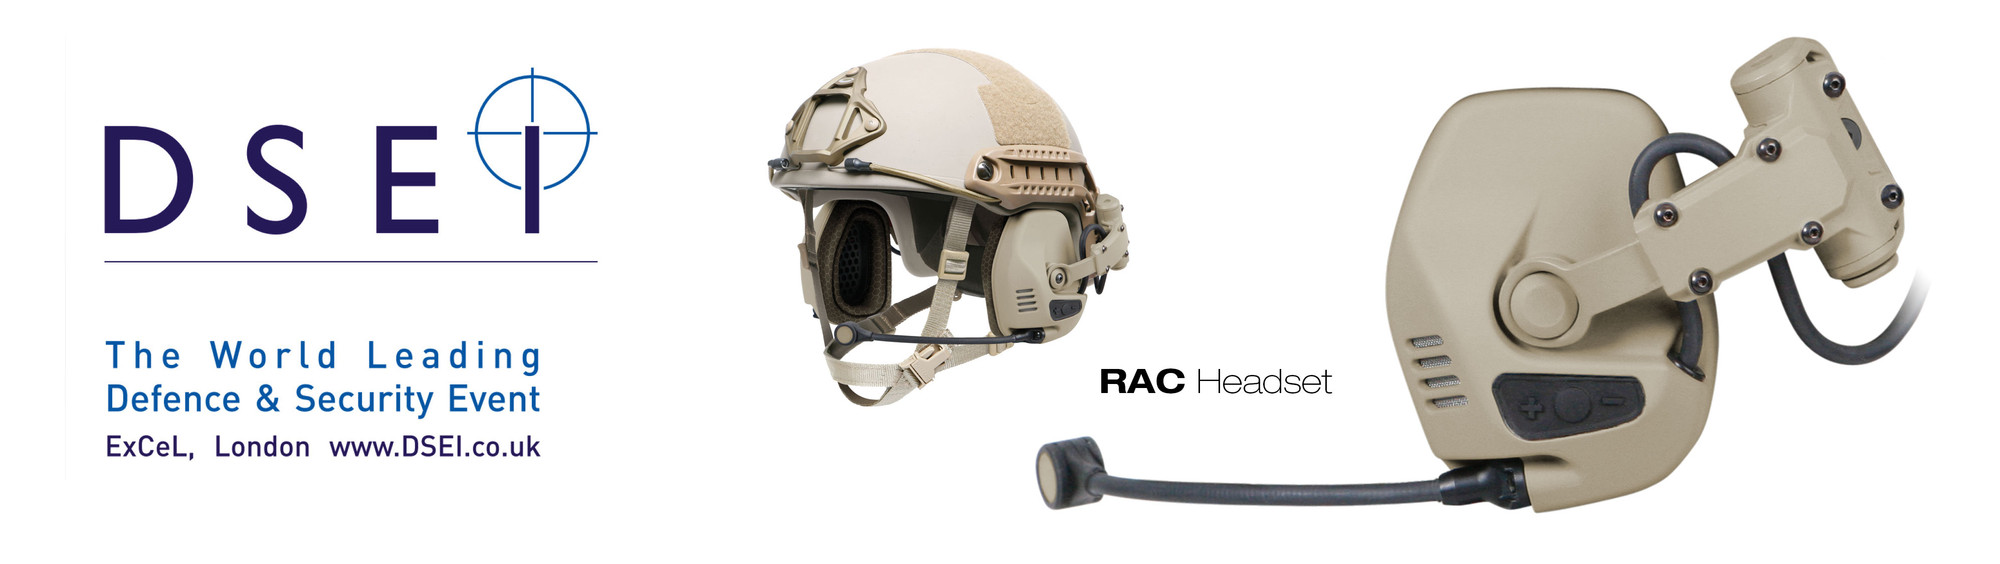 GENTEX CORPORATION FEATURES NEW OPS-CORE RAC HEADSET AT DSEI